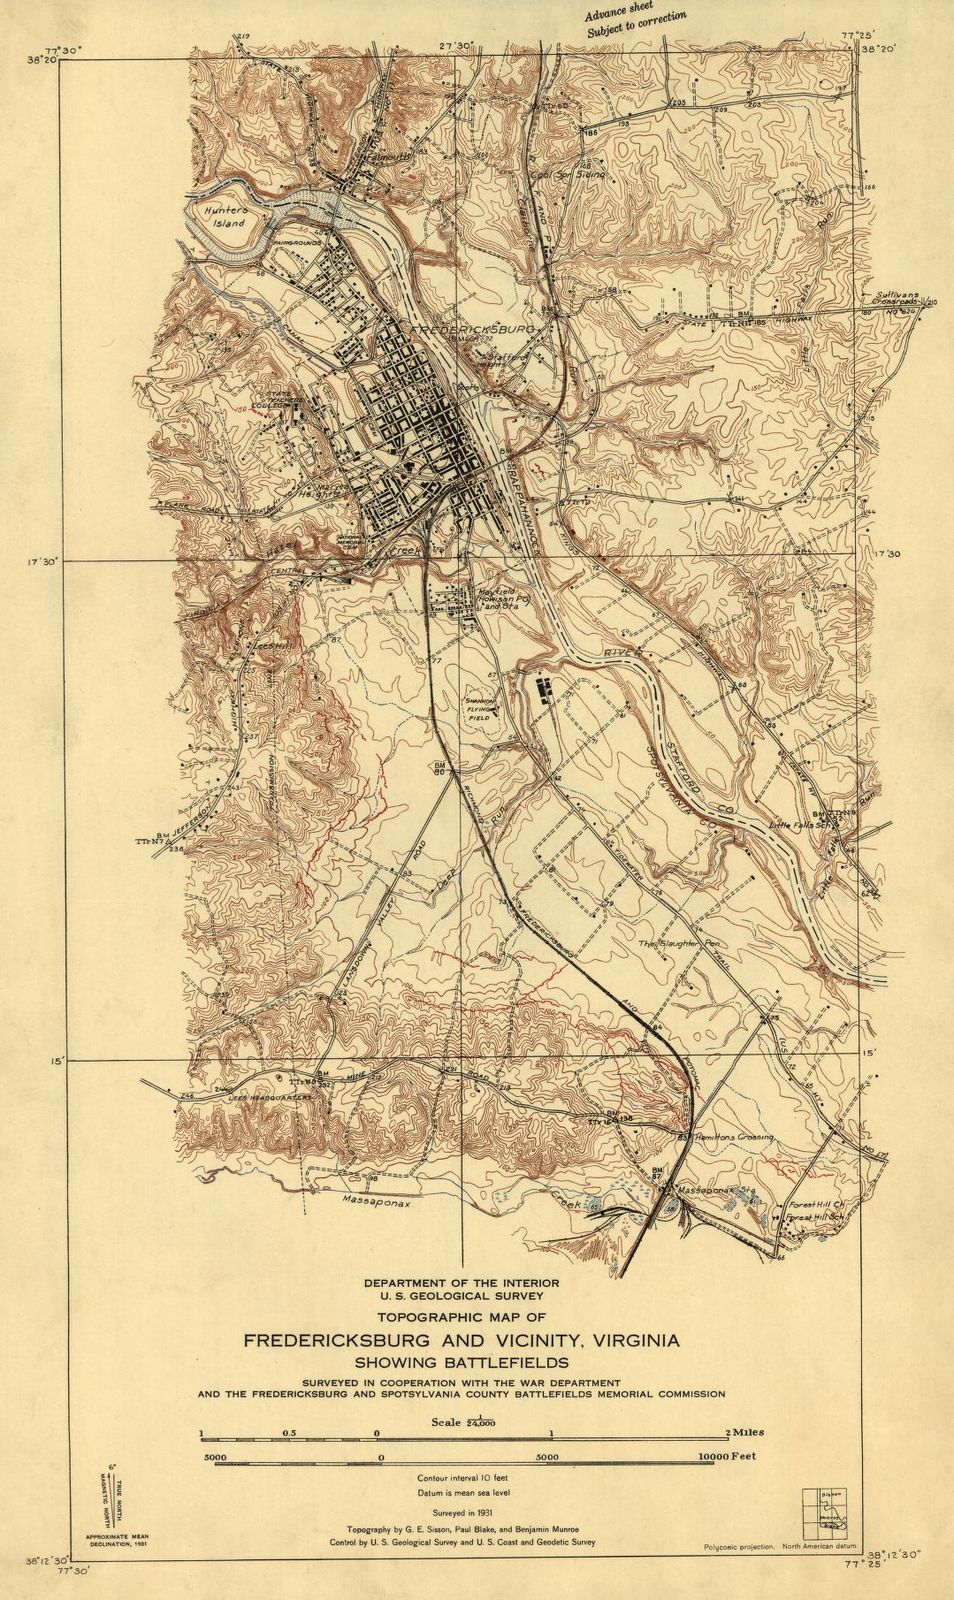 Topographic Map Of Fredericksburg And Vicinity Virginia Showing